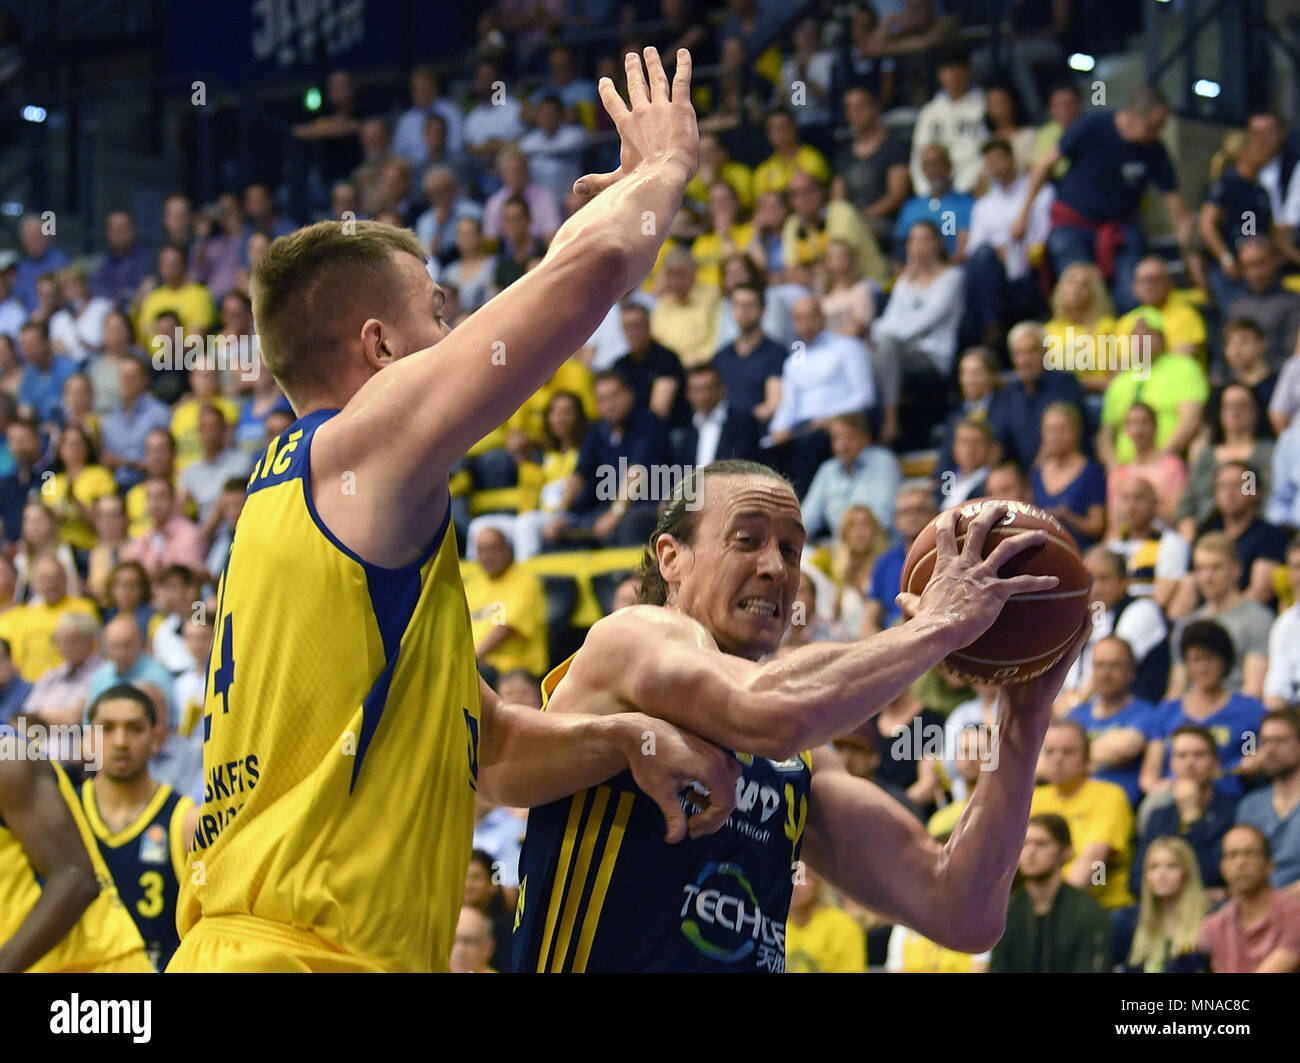 15 May 2018, Germany, Oldenburg: Bundesliga, EWE Baskets Oldenburg vs ALBA Berlin, championship round, quarter-final, in the EWE Arena. Oldenburg's Rasid Mahalbasic (L) attempting to block Berlin's Dennis Clifford. Photo: Carmen Jaspersen/dpa - Stock Image